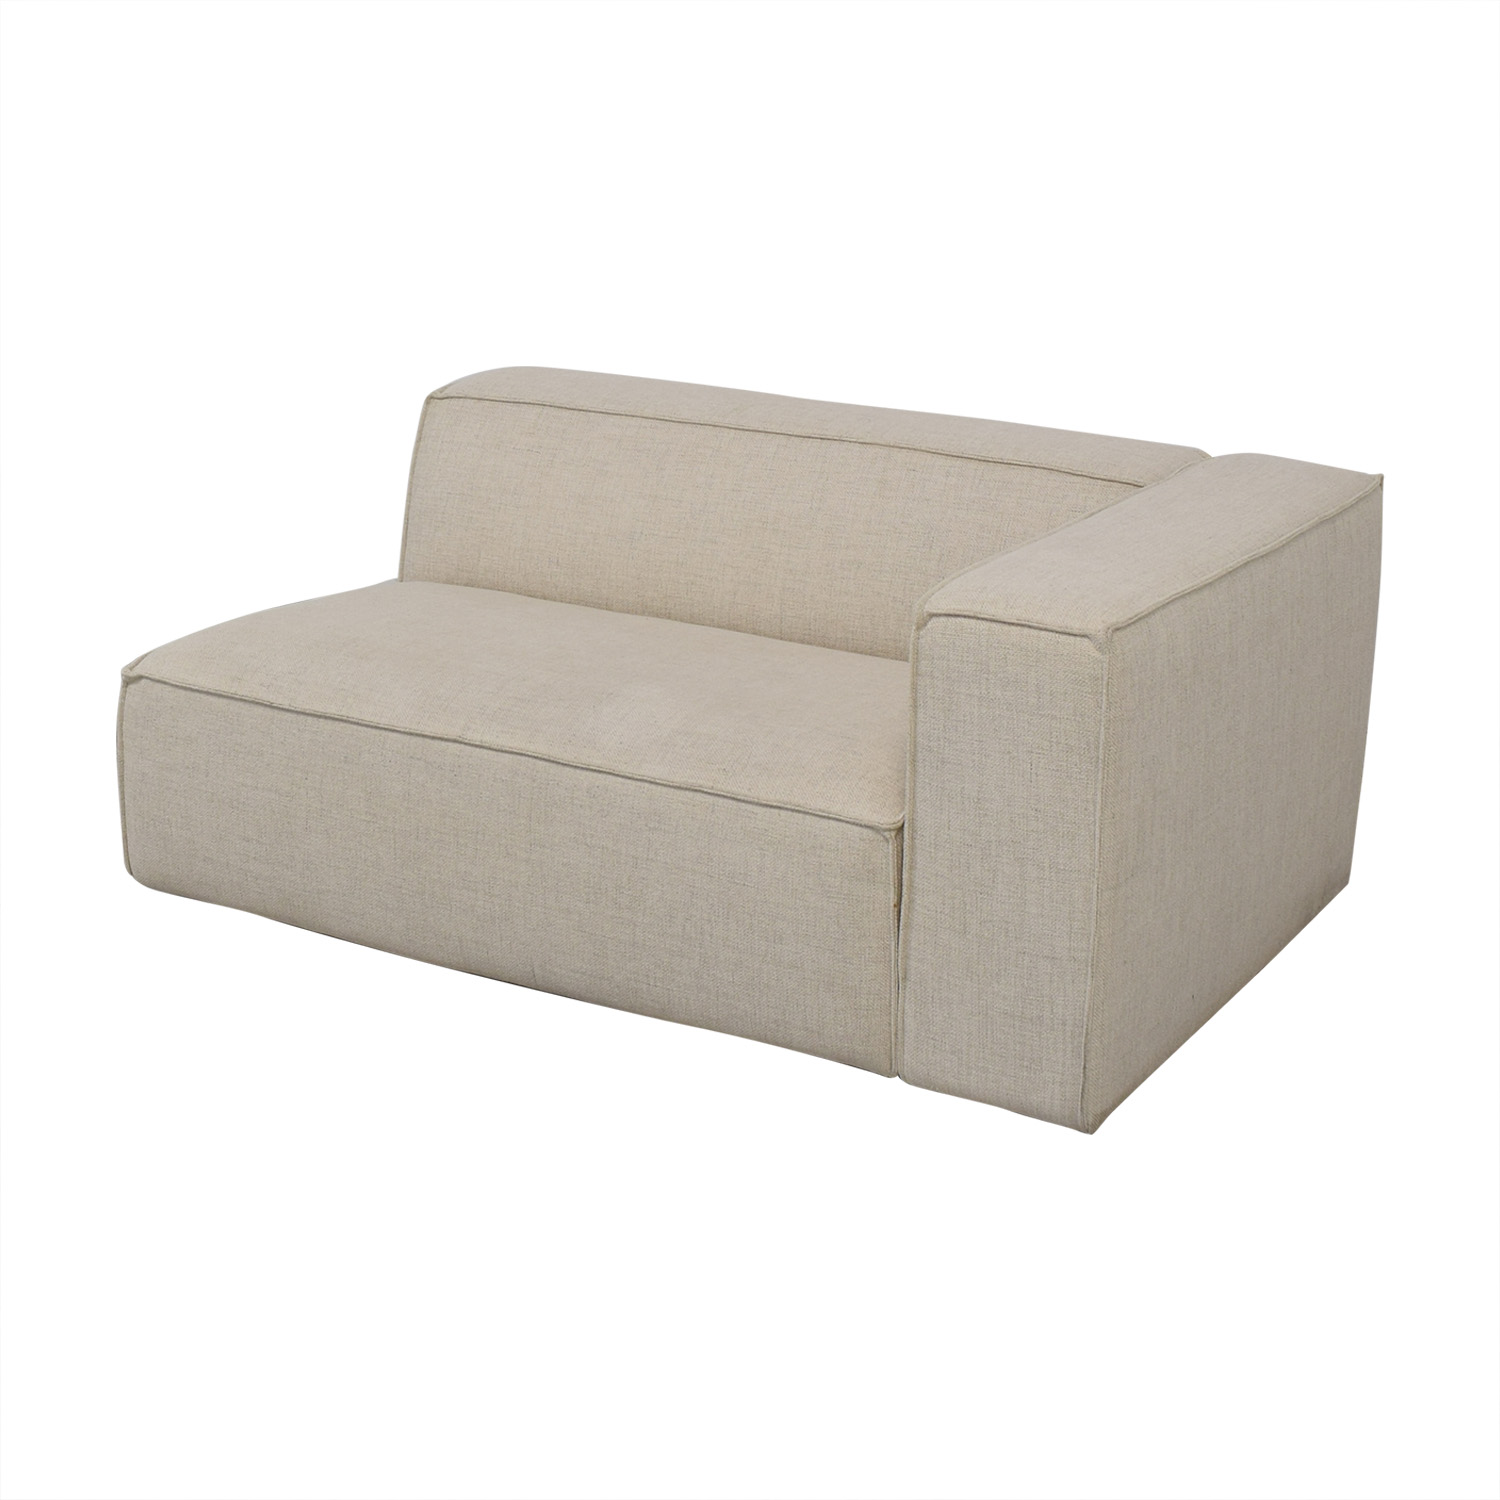 Interior Define Interior Define White One-Arm High Sofa price